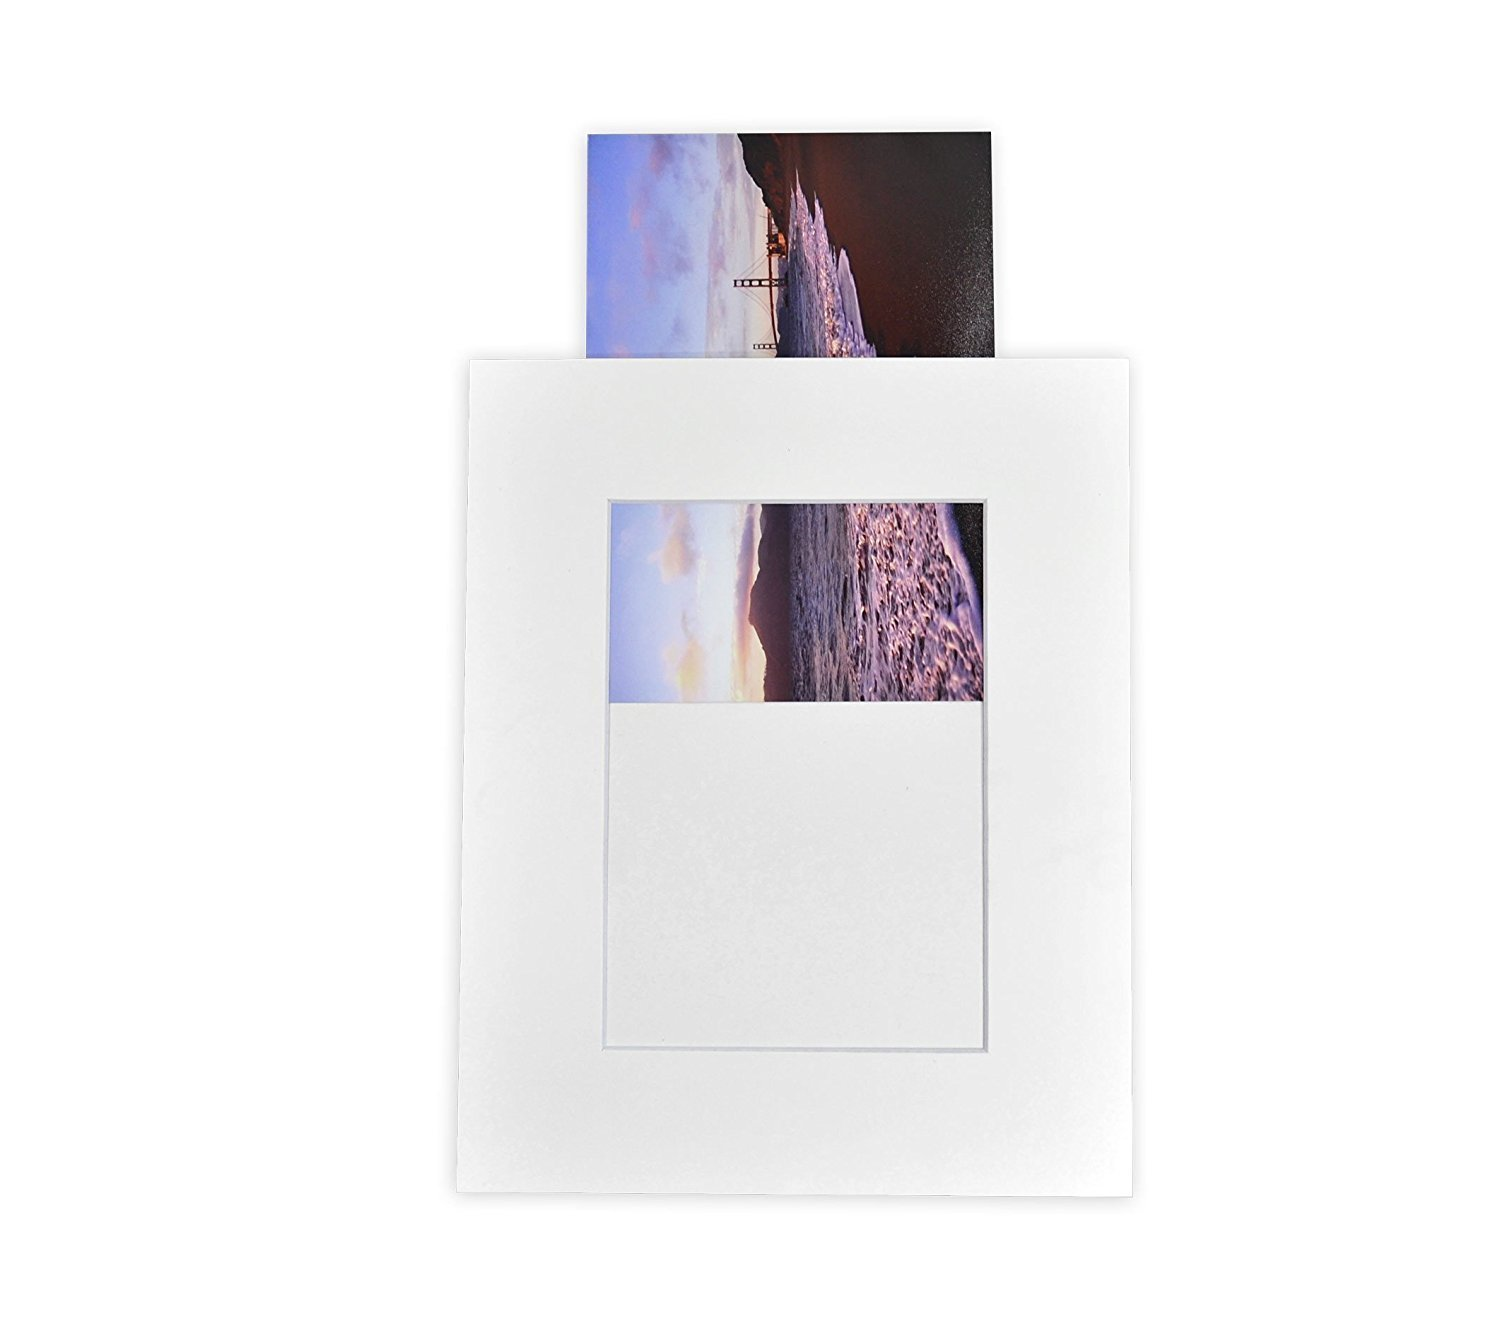 Golden State Art Pack of 10 White 8x10 Slip-in Pre-Adhesive Photo Mat for 5x7 Picture with Backing Board pre-Assembled, Includes 10 Clear Bags A501-SI-10Kit-810-57